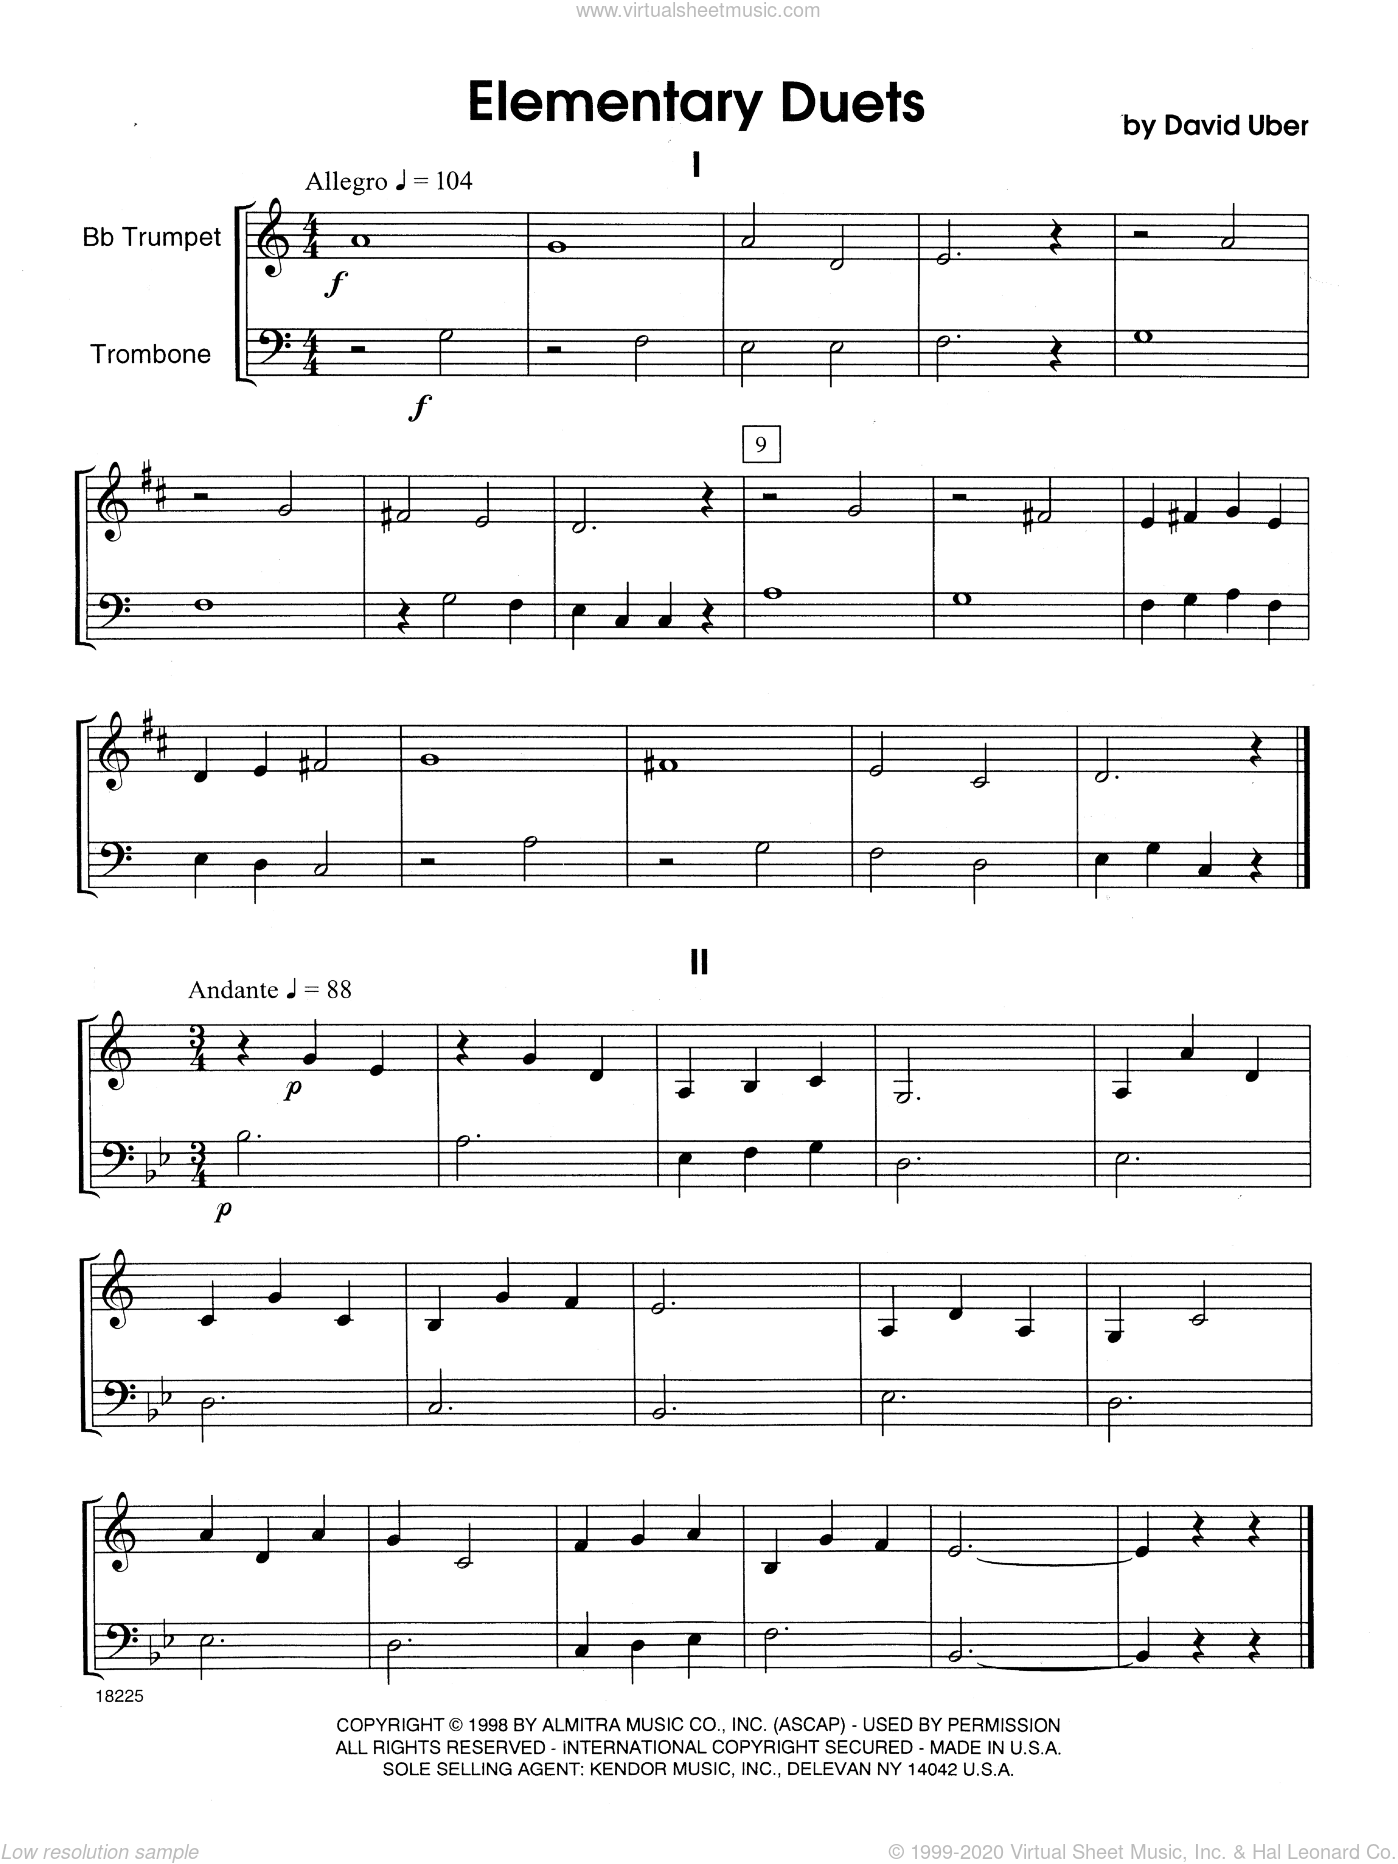 Elementary Duets sheet music for trumpet and trombone by David Uber, beginner duet